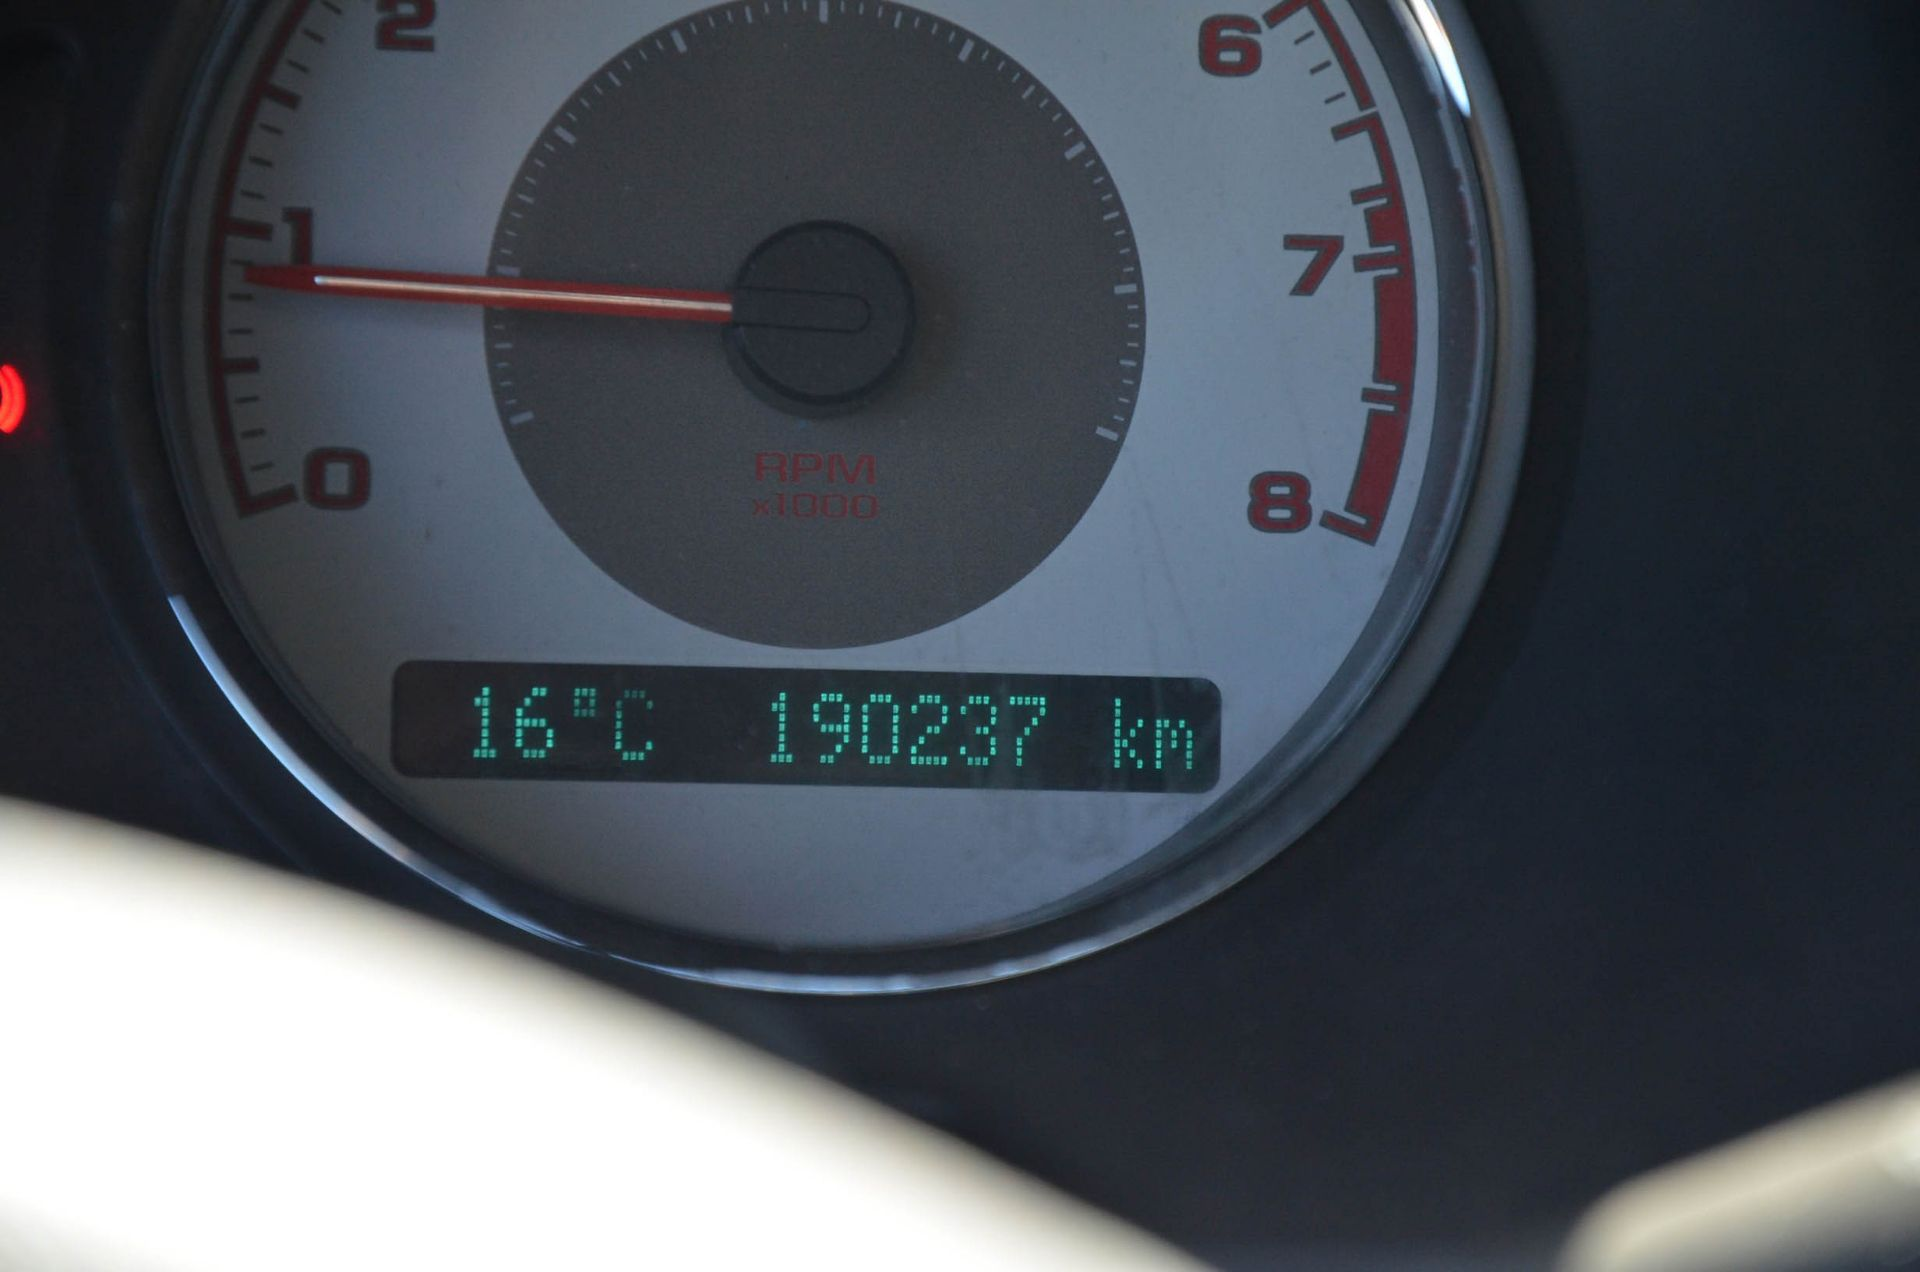 PONTIAC (2008) G5 4-DOOR SEDAN, AUTO, APPROX. 192,000 KM (RECORDED ON METER AT THE TIME OF LISTING), - Image 8 of 9